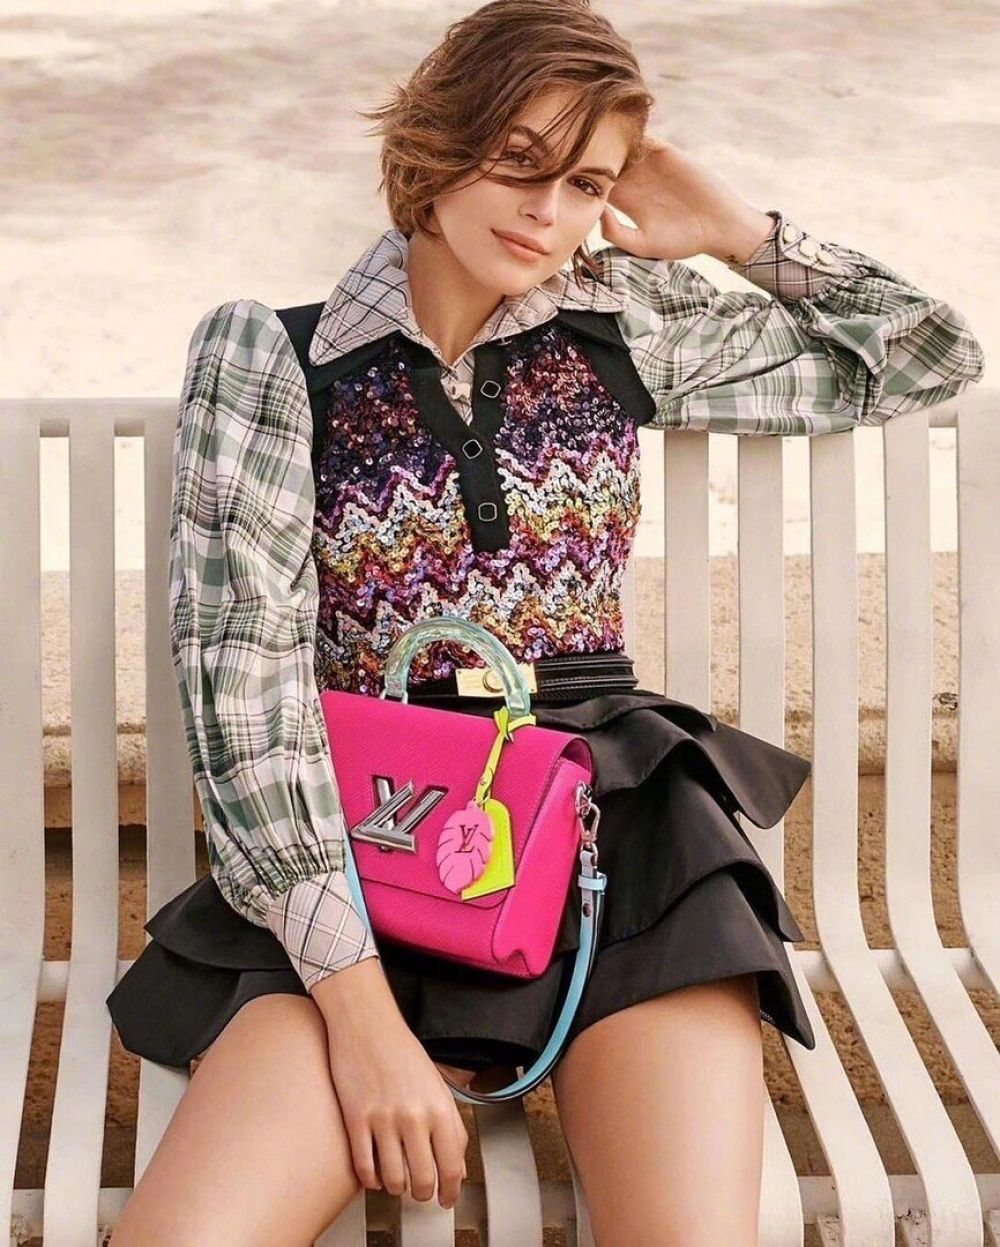 Kaia Gerber for Louis Vuitton Twist Bags for Spring 2020 Campaign 0